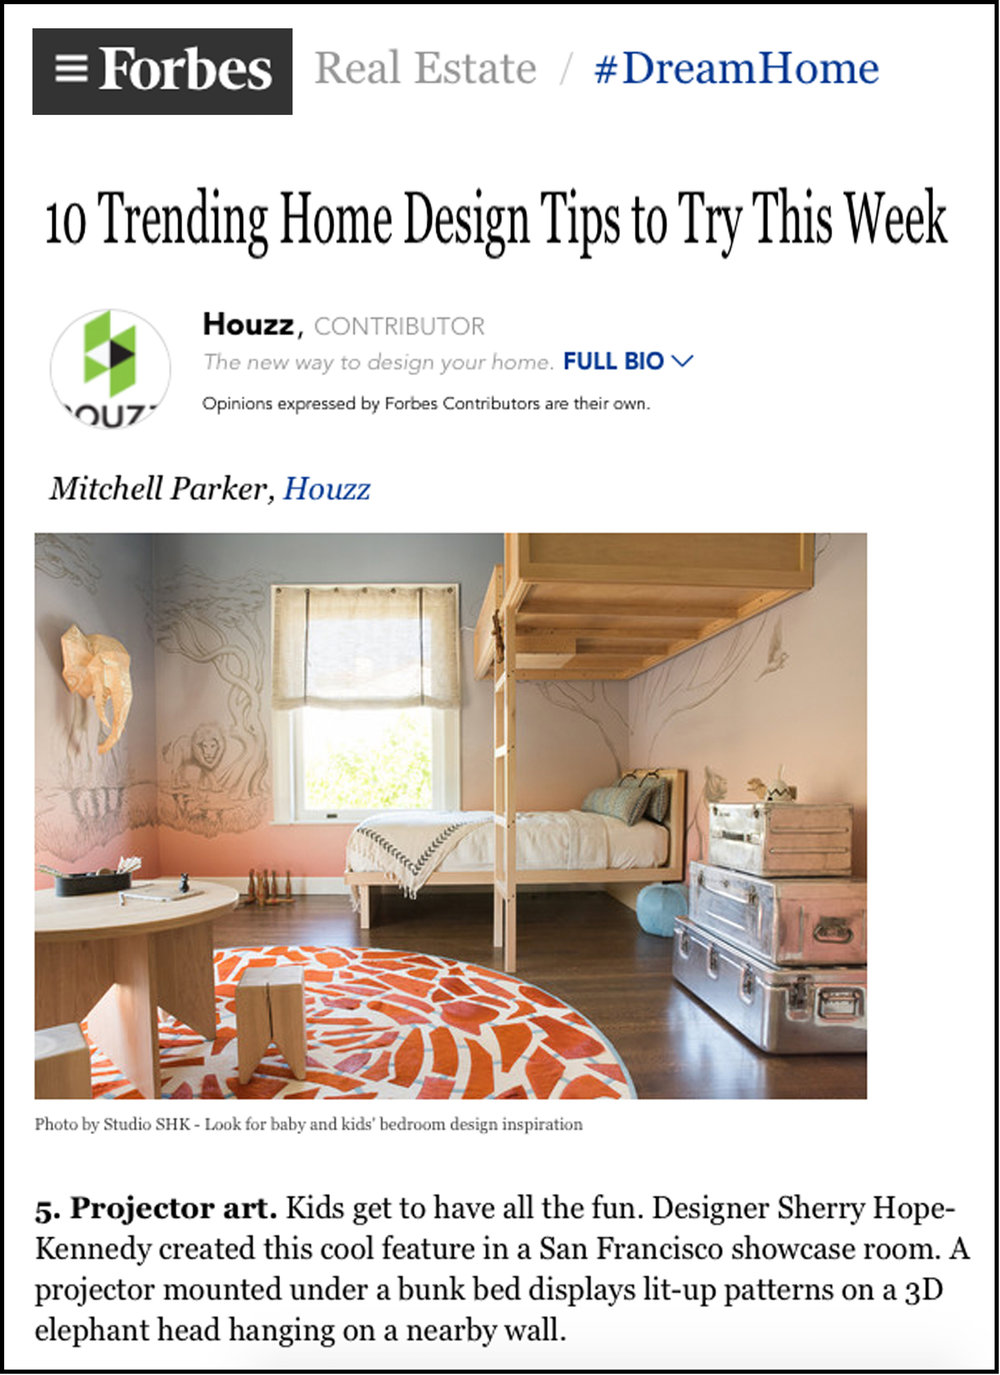 Forbes - Forbes.com picks-up Houzz's